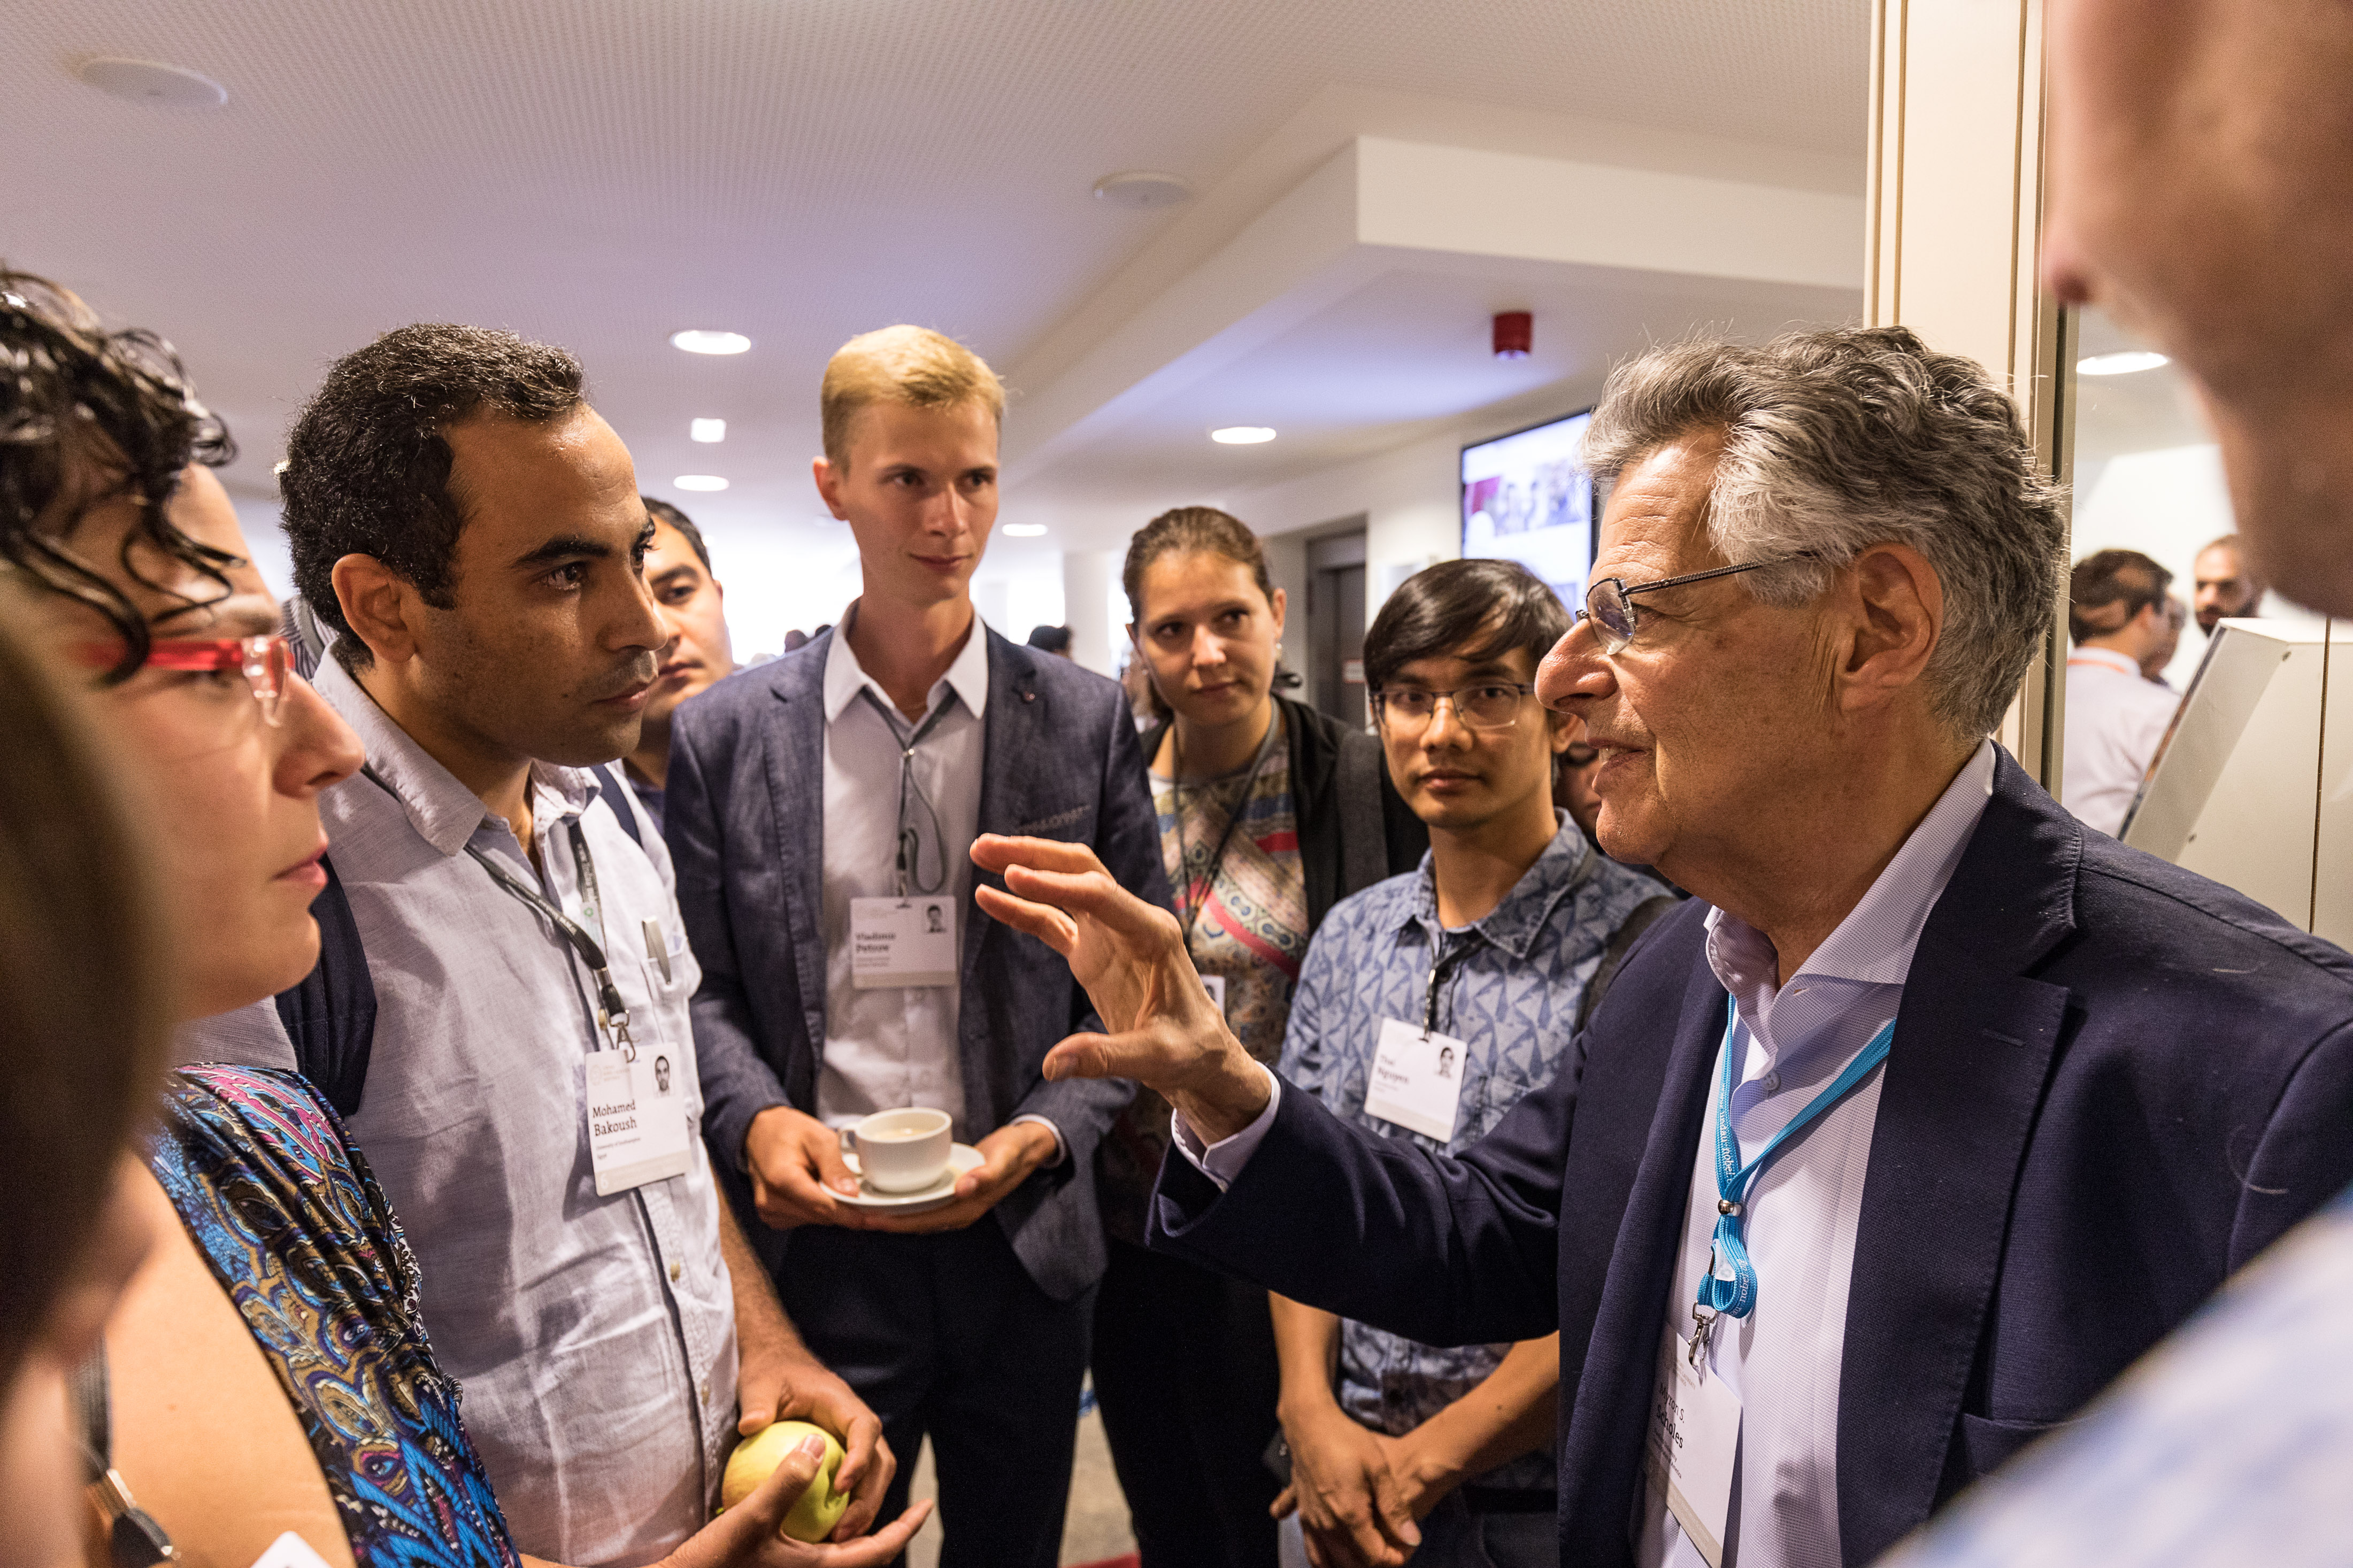 Myron Scholes in talk with young economists 6th Lindau Meeting on Economic Sciences 23.08.2017 - 26.08.2017, Lindau, Germany, Picture/Credit: Christian Flemming/Lindau Nobel Laureate Meetings